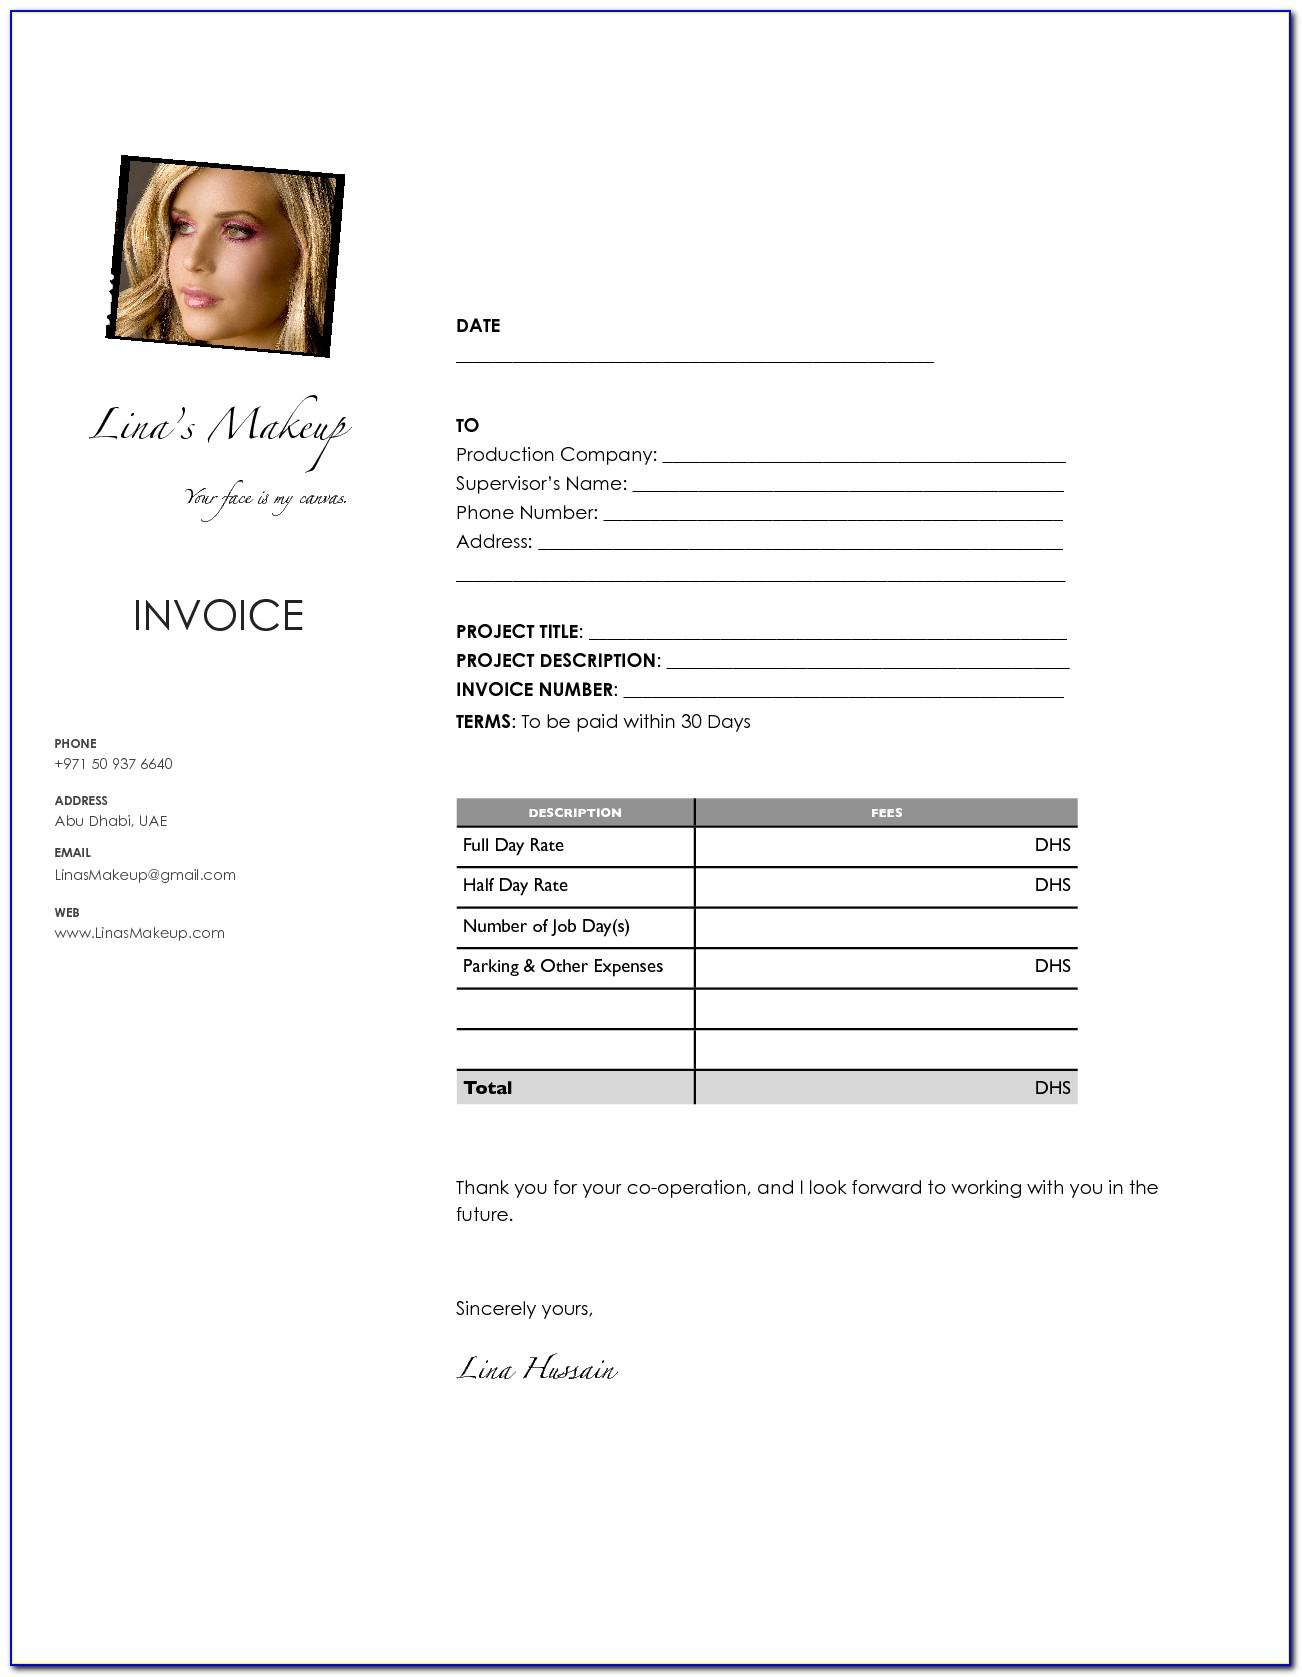 Freelance Makeup Artist Invoice Template